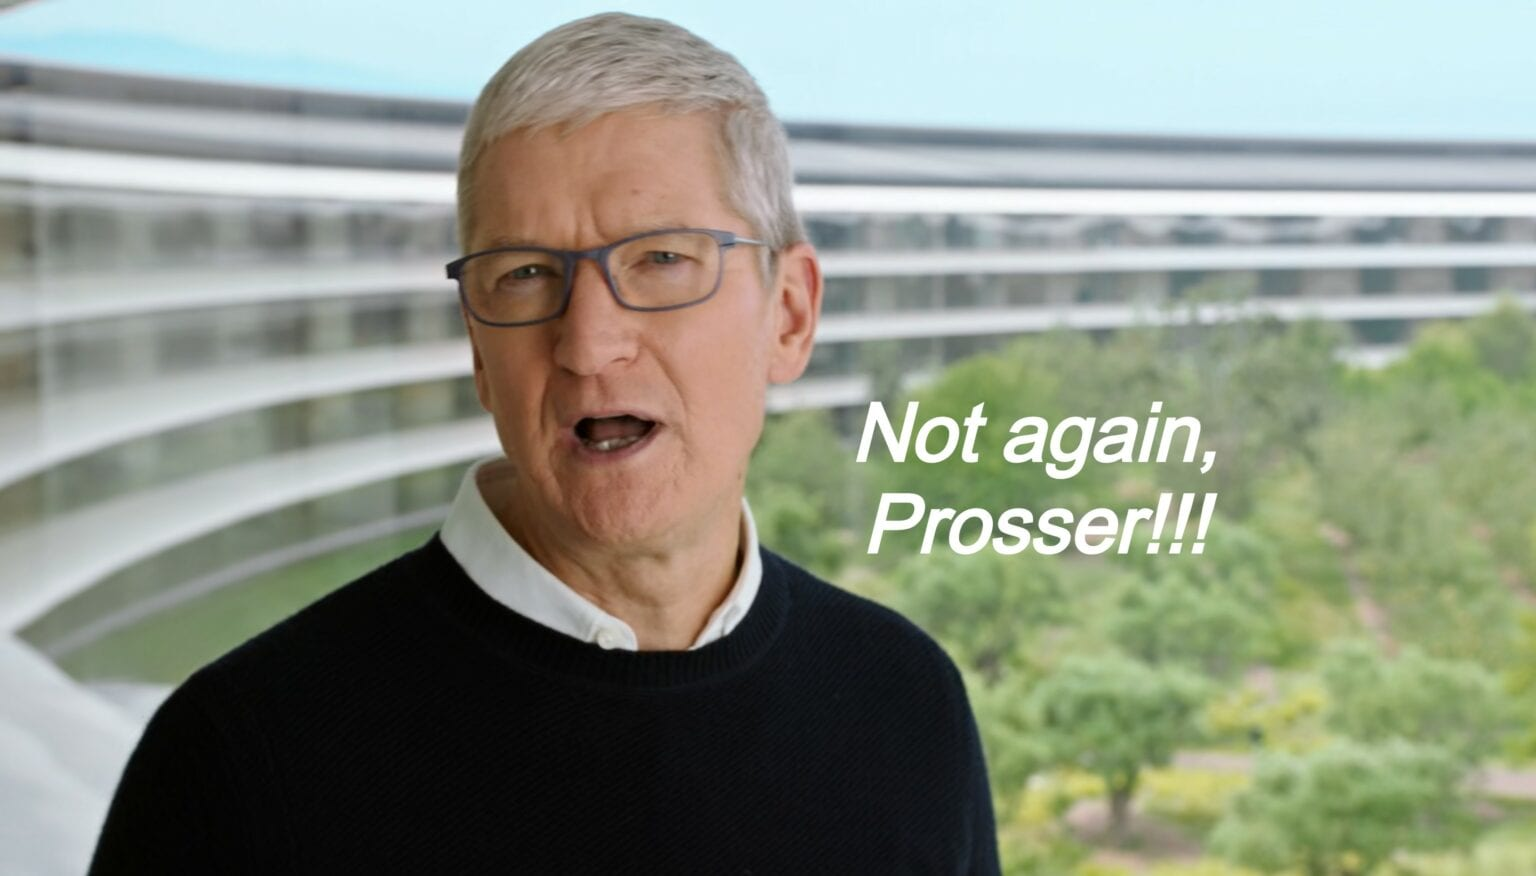 Tim Cook can't be happy about Jon Prosser's latest hits.